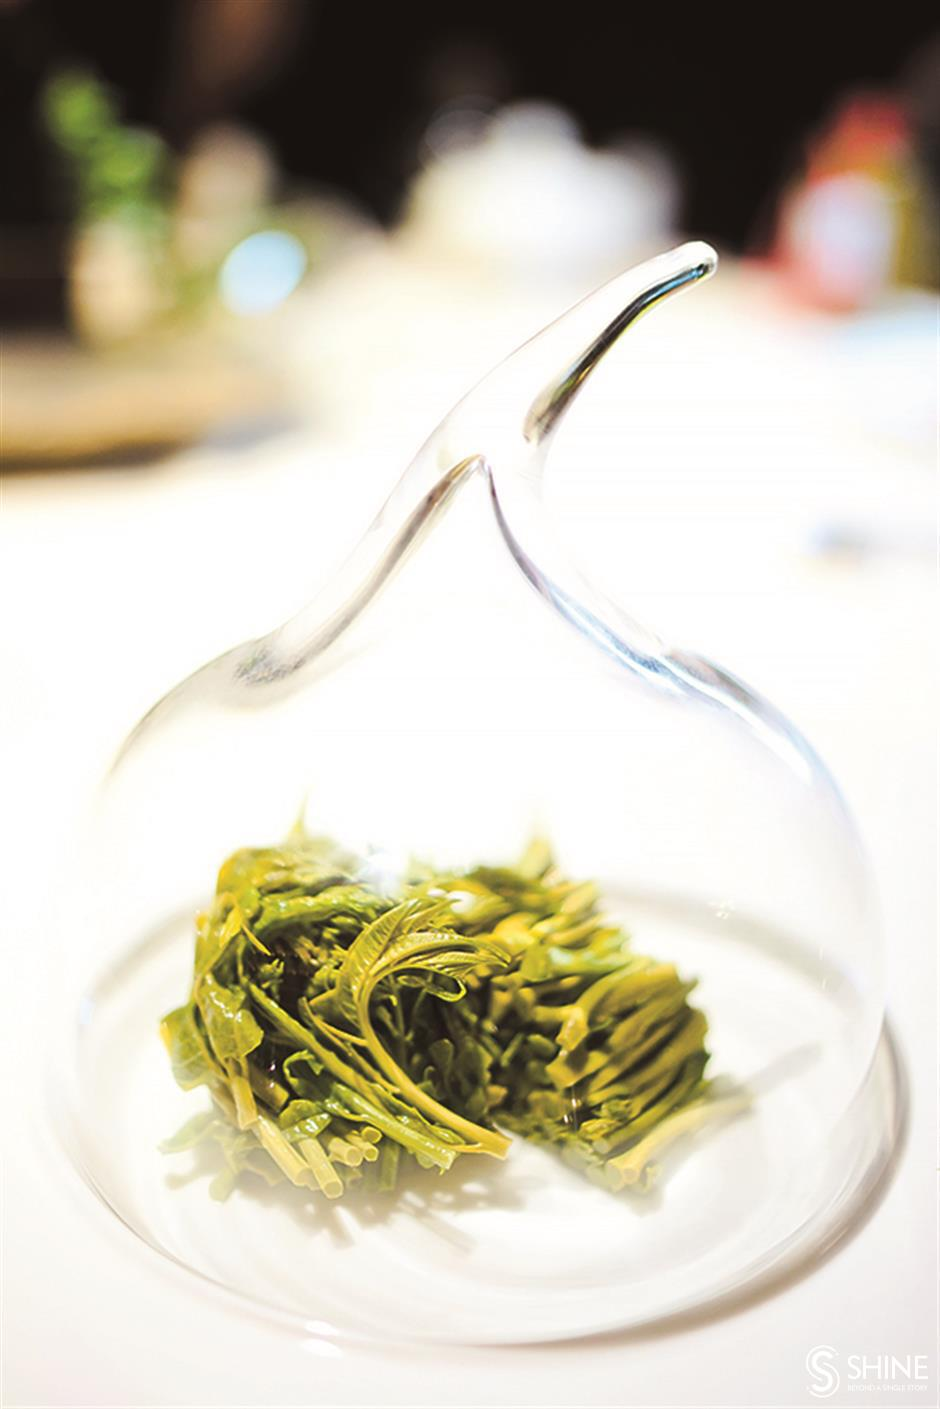 Qian cuisine elevated to gastronomic high